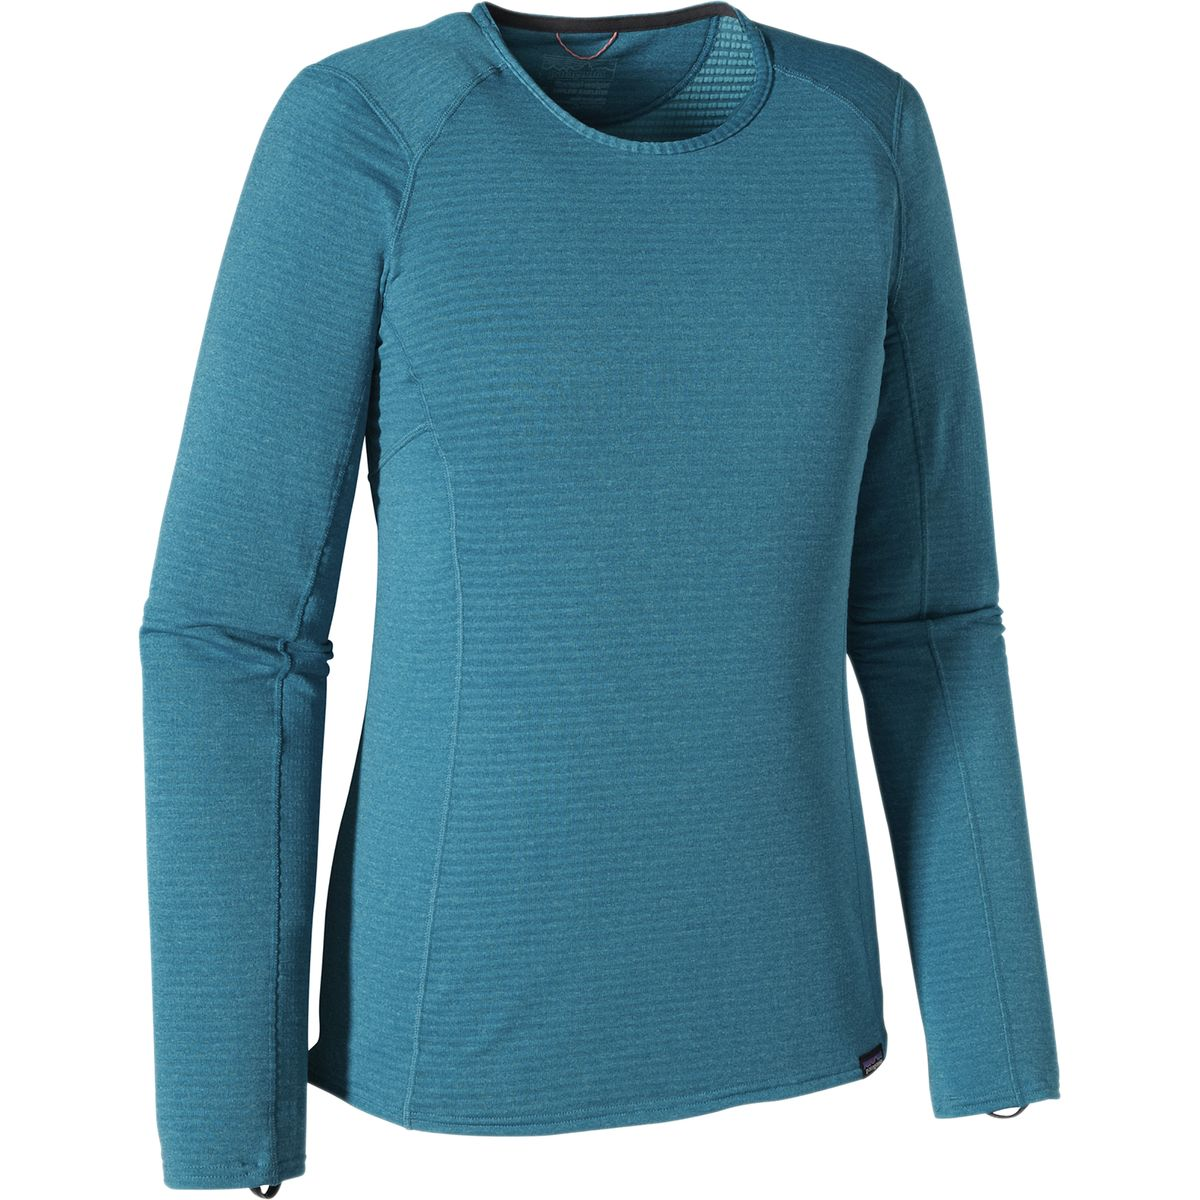 Patagonia Capilene Thermal Weight Crew Top - Women